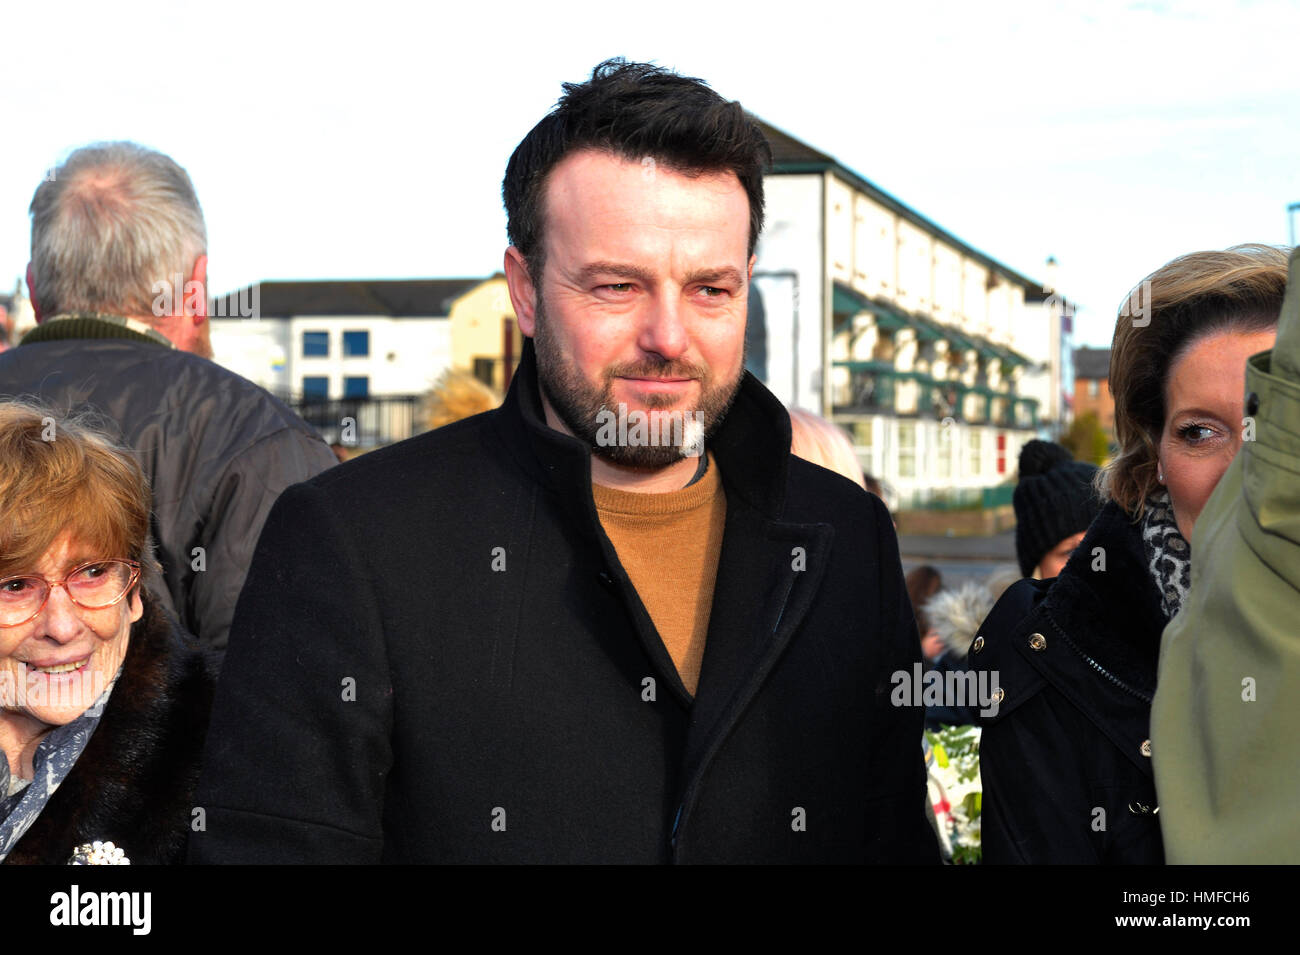 SDLP leader Colum Eastwood attending the 45th Bloody Sunday memorial service in Derry, Londonderry. - Stock Image